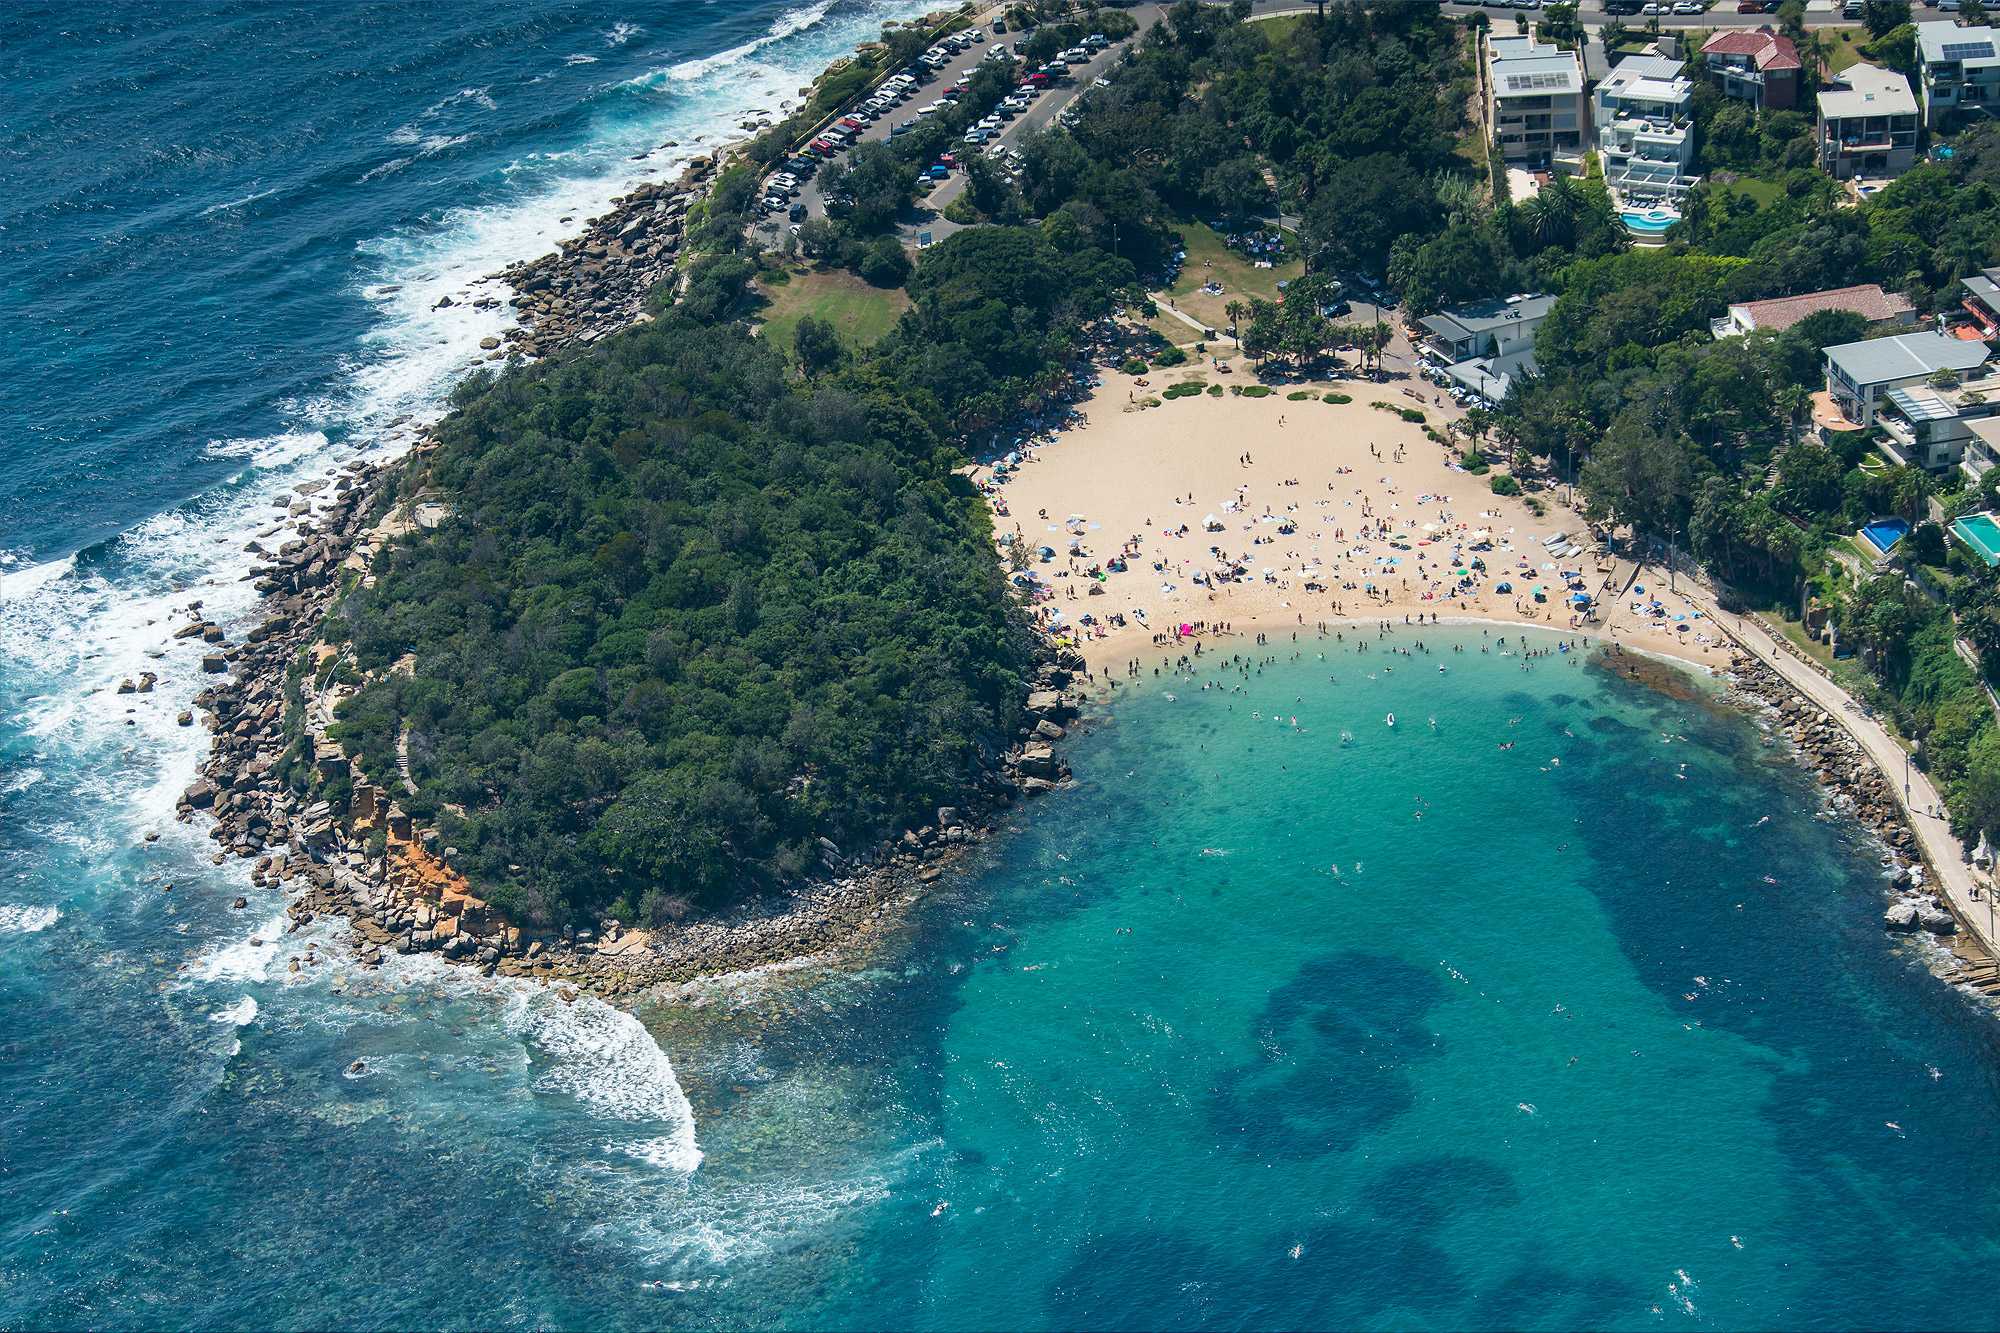 Shelly Beach next to Manly